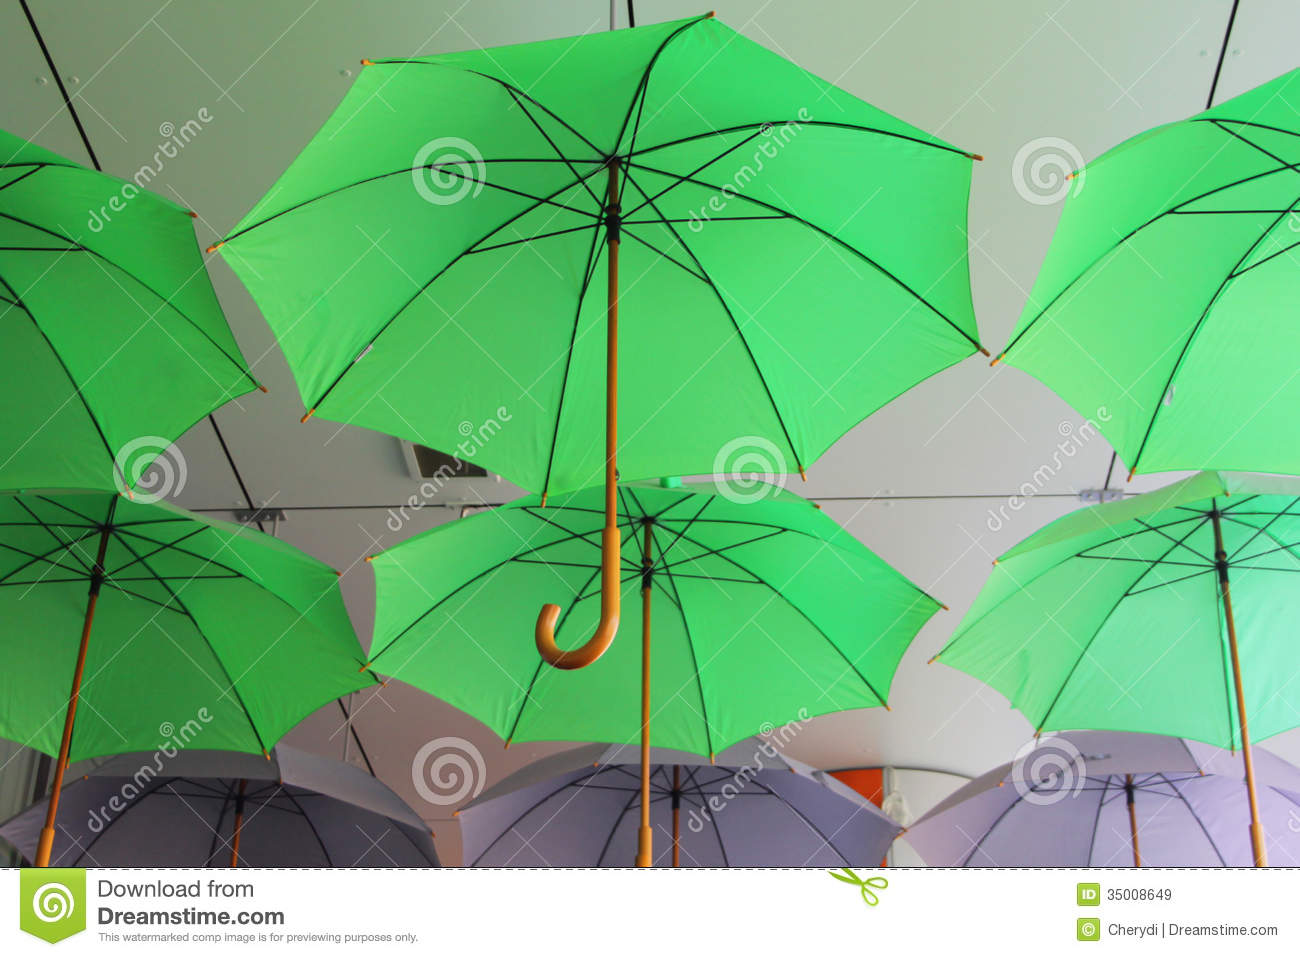 Umbrellas royalty free stock images image 35008649 for Colorful concepts interior design